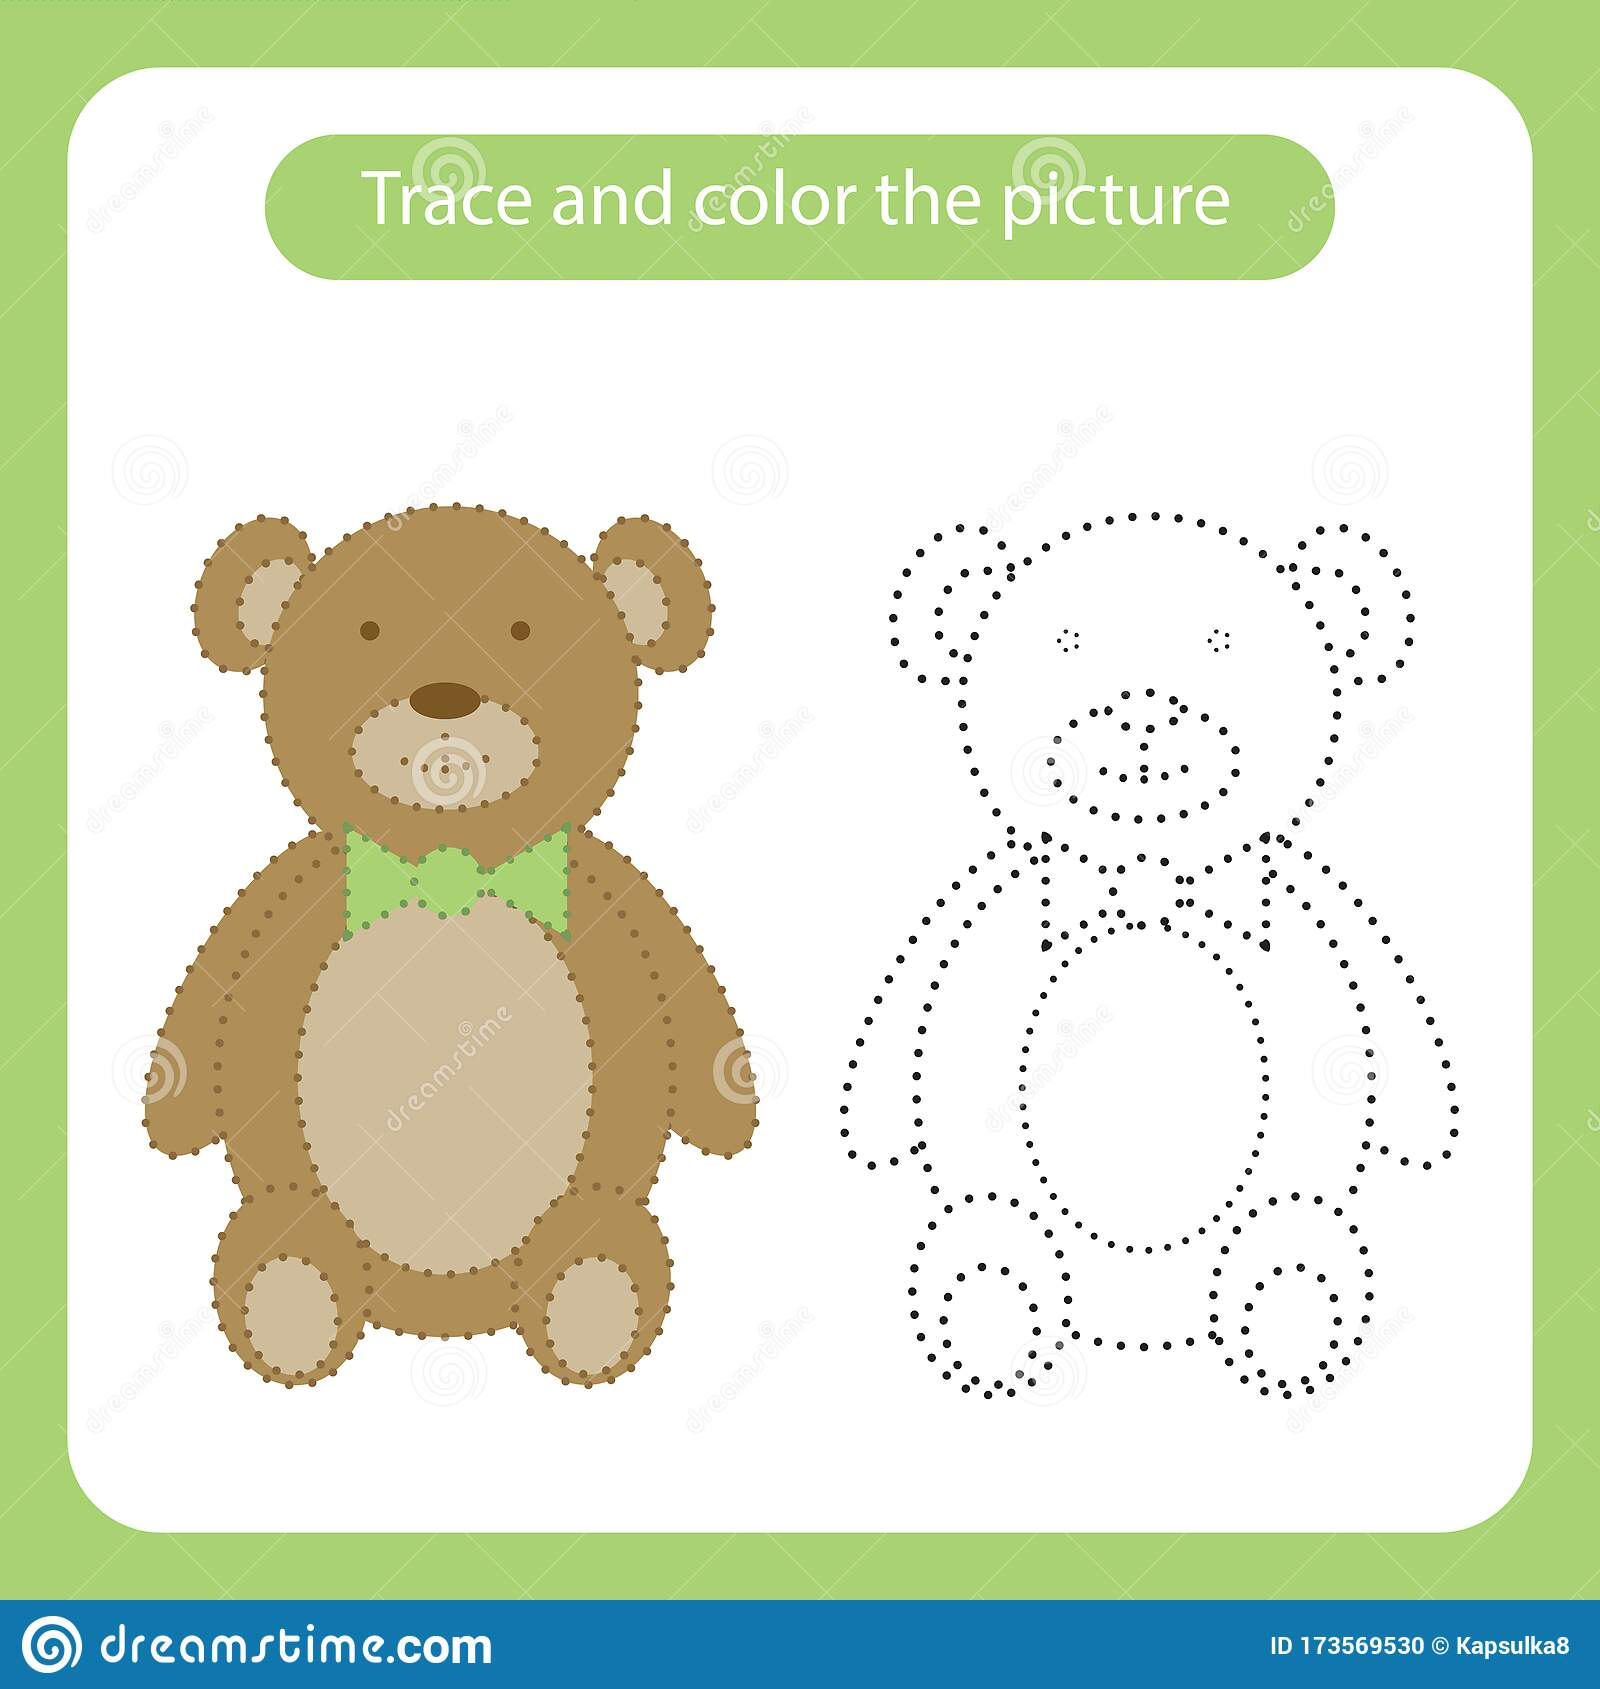 Teddy Bear Toy With Simple Shapes Trace And Color The